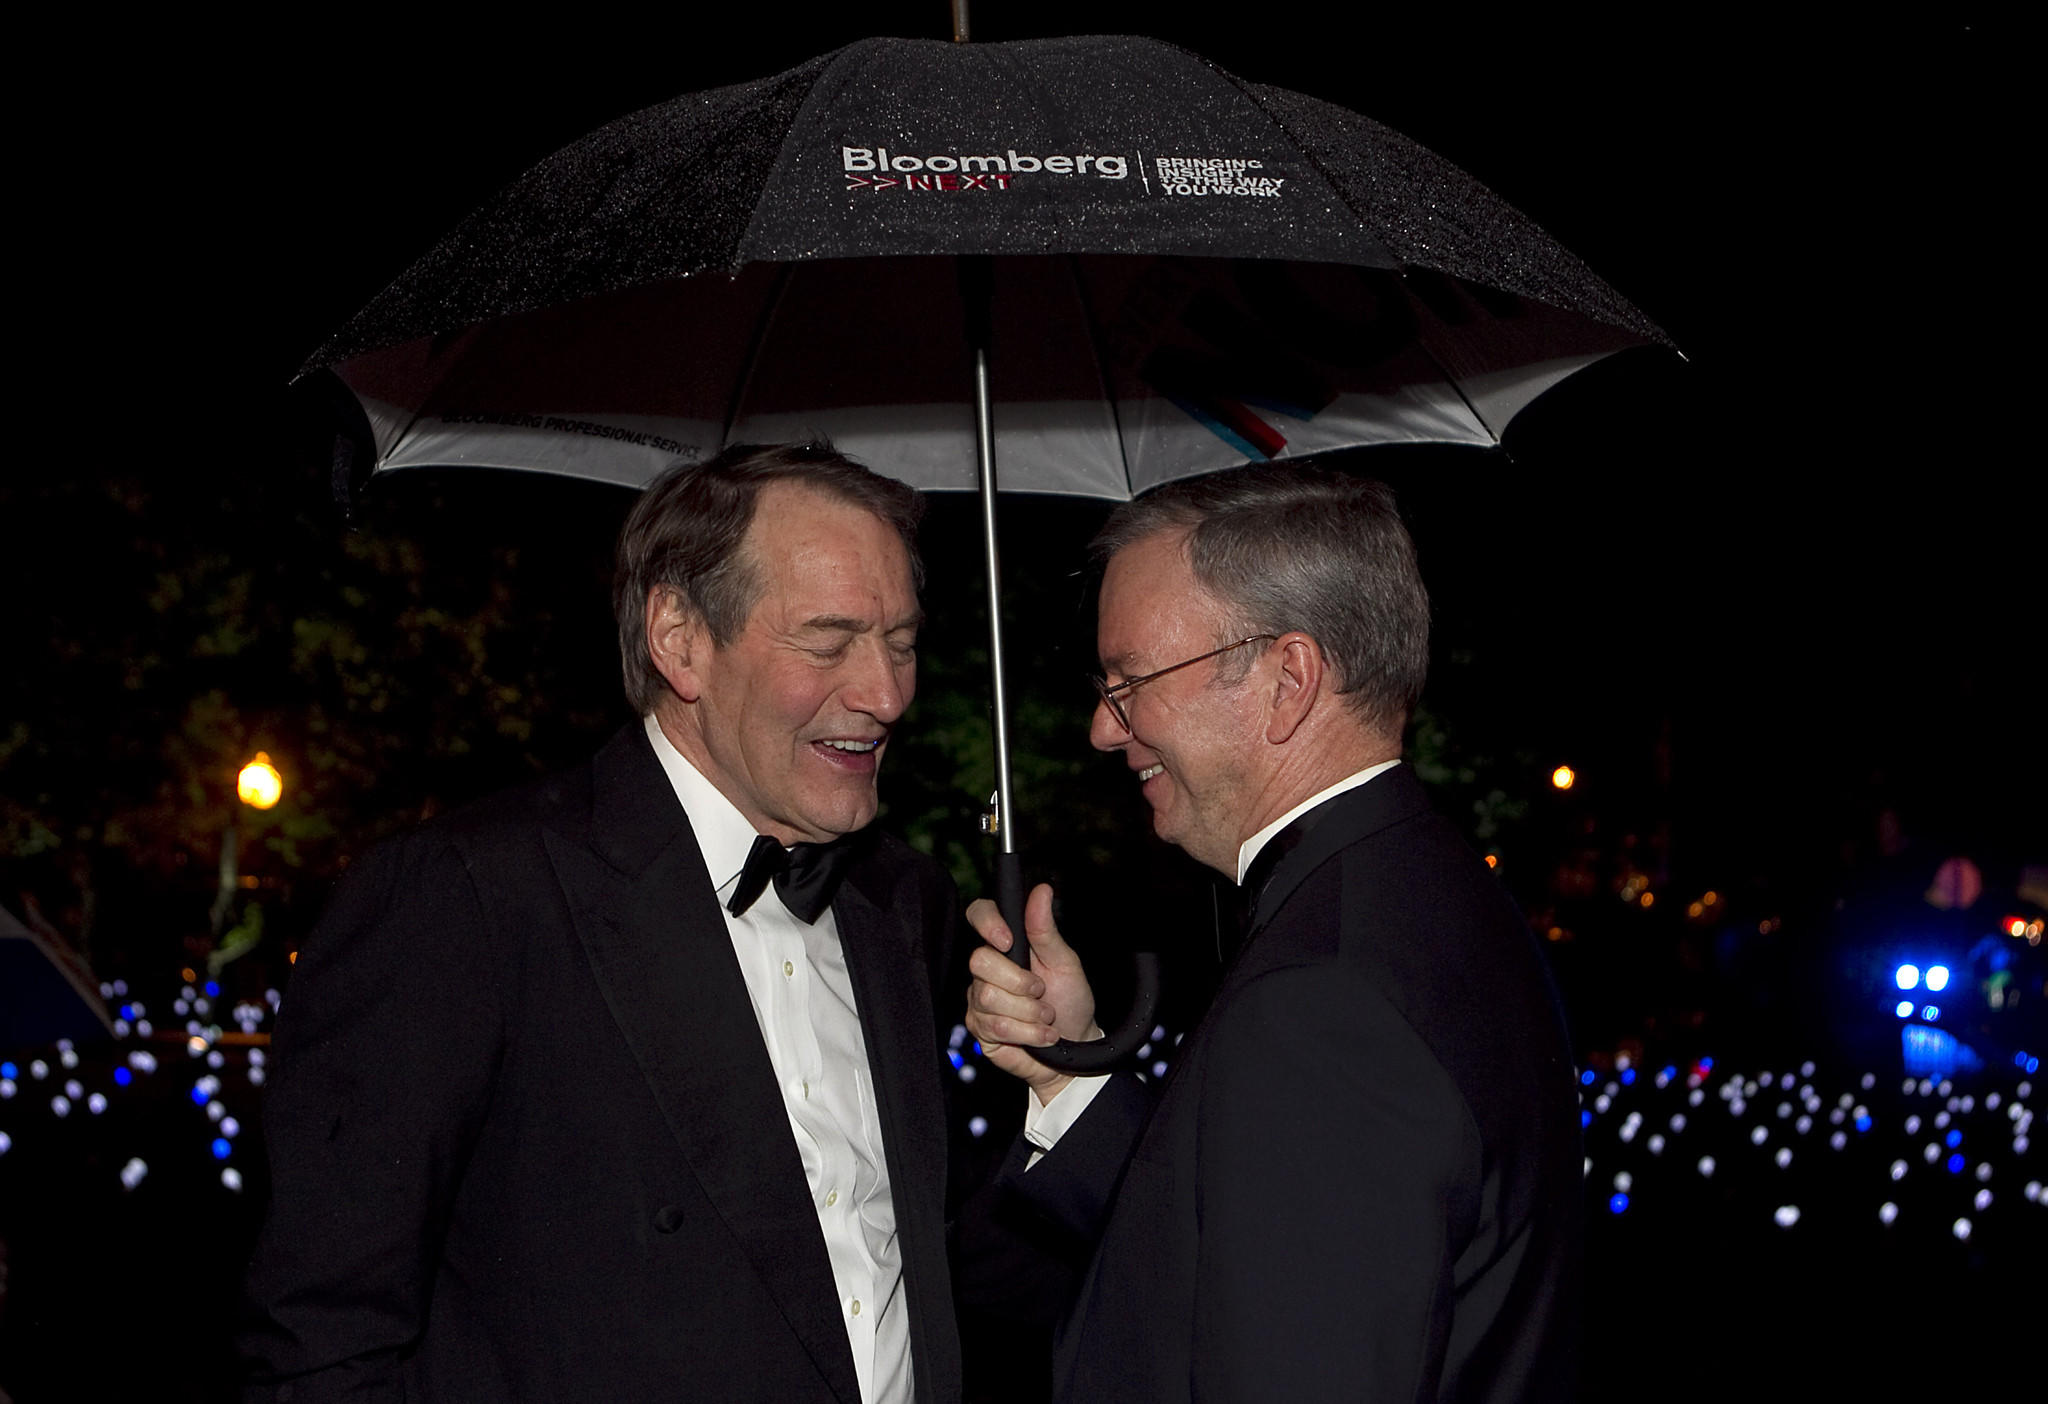 Broadcaster Charlie Rose, left, and Google Chairman Eric Schmidt attend the Bloomberg Vanity Fair White House Correspondents' Association (WHCA) dinner afterparty in Washington, D.C., U.S., on Saturday, April 28, 2012.